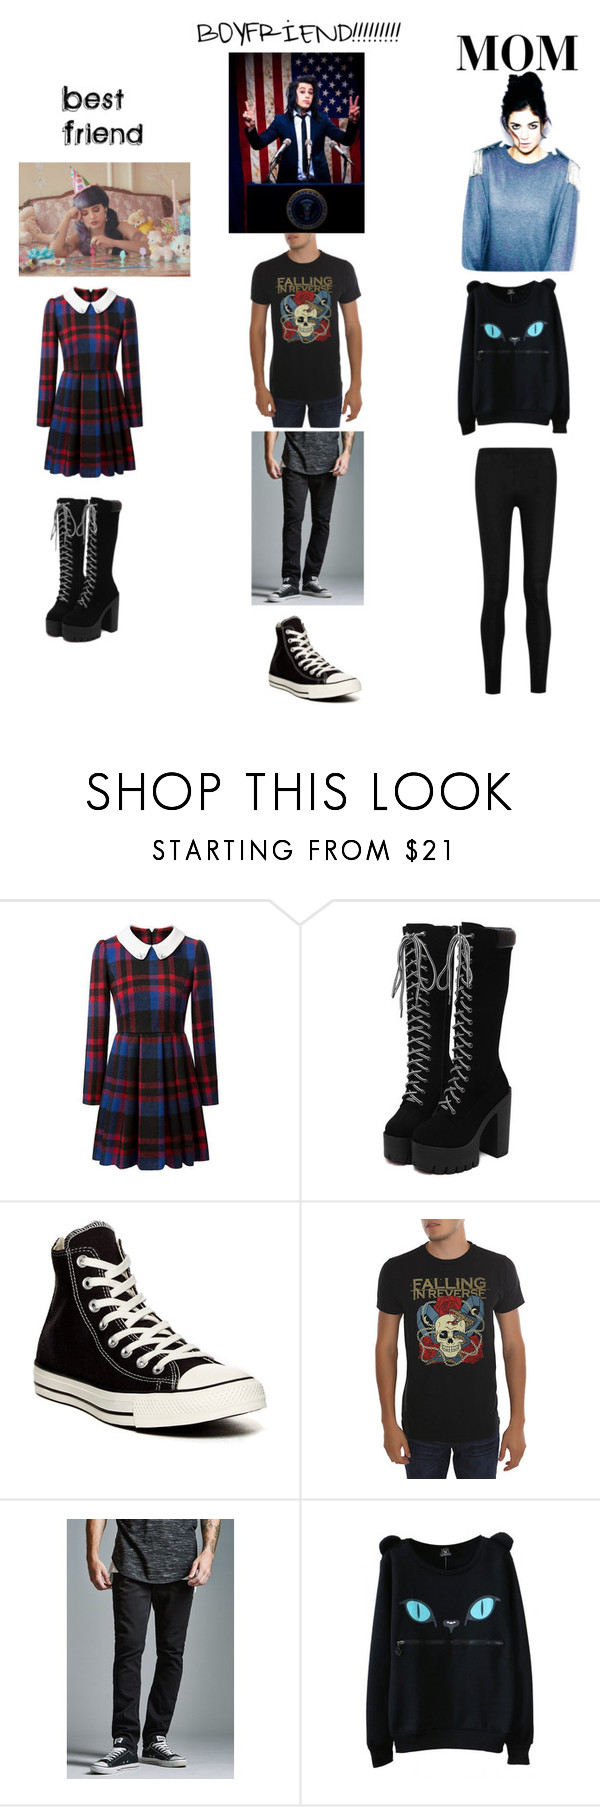 """MY DREAM ( KELLY)"" by twinz4ever ❤ liked on Polyvore featuring Converse, Bullhead Denim Co. and Donna Karan"